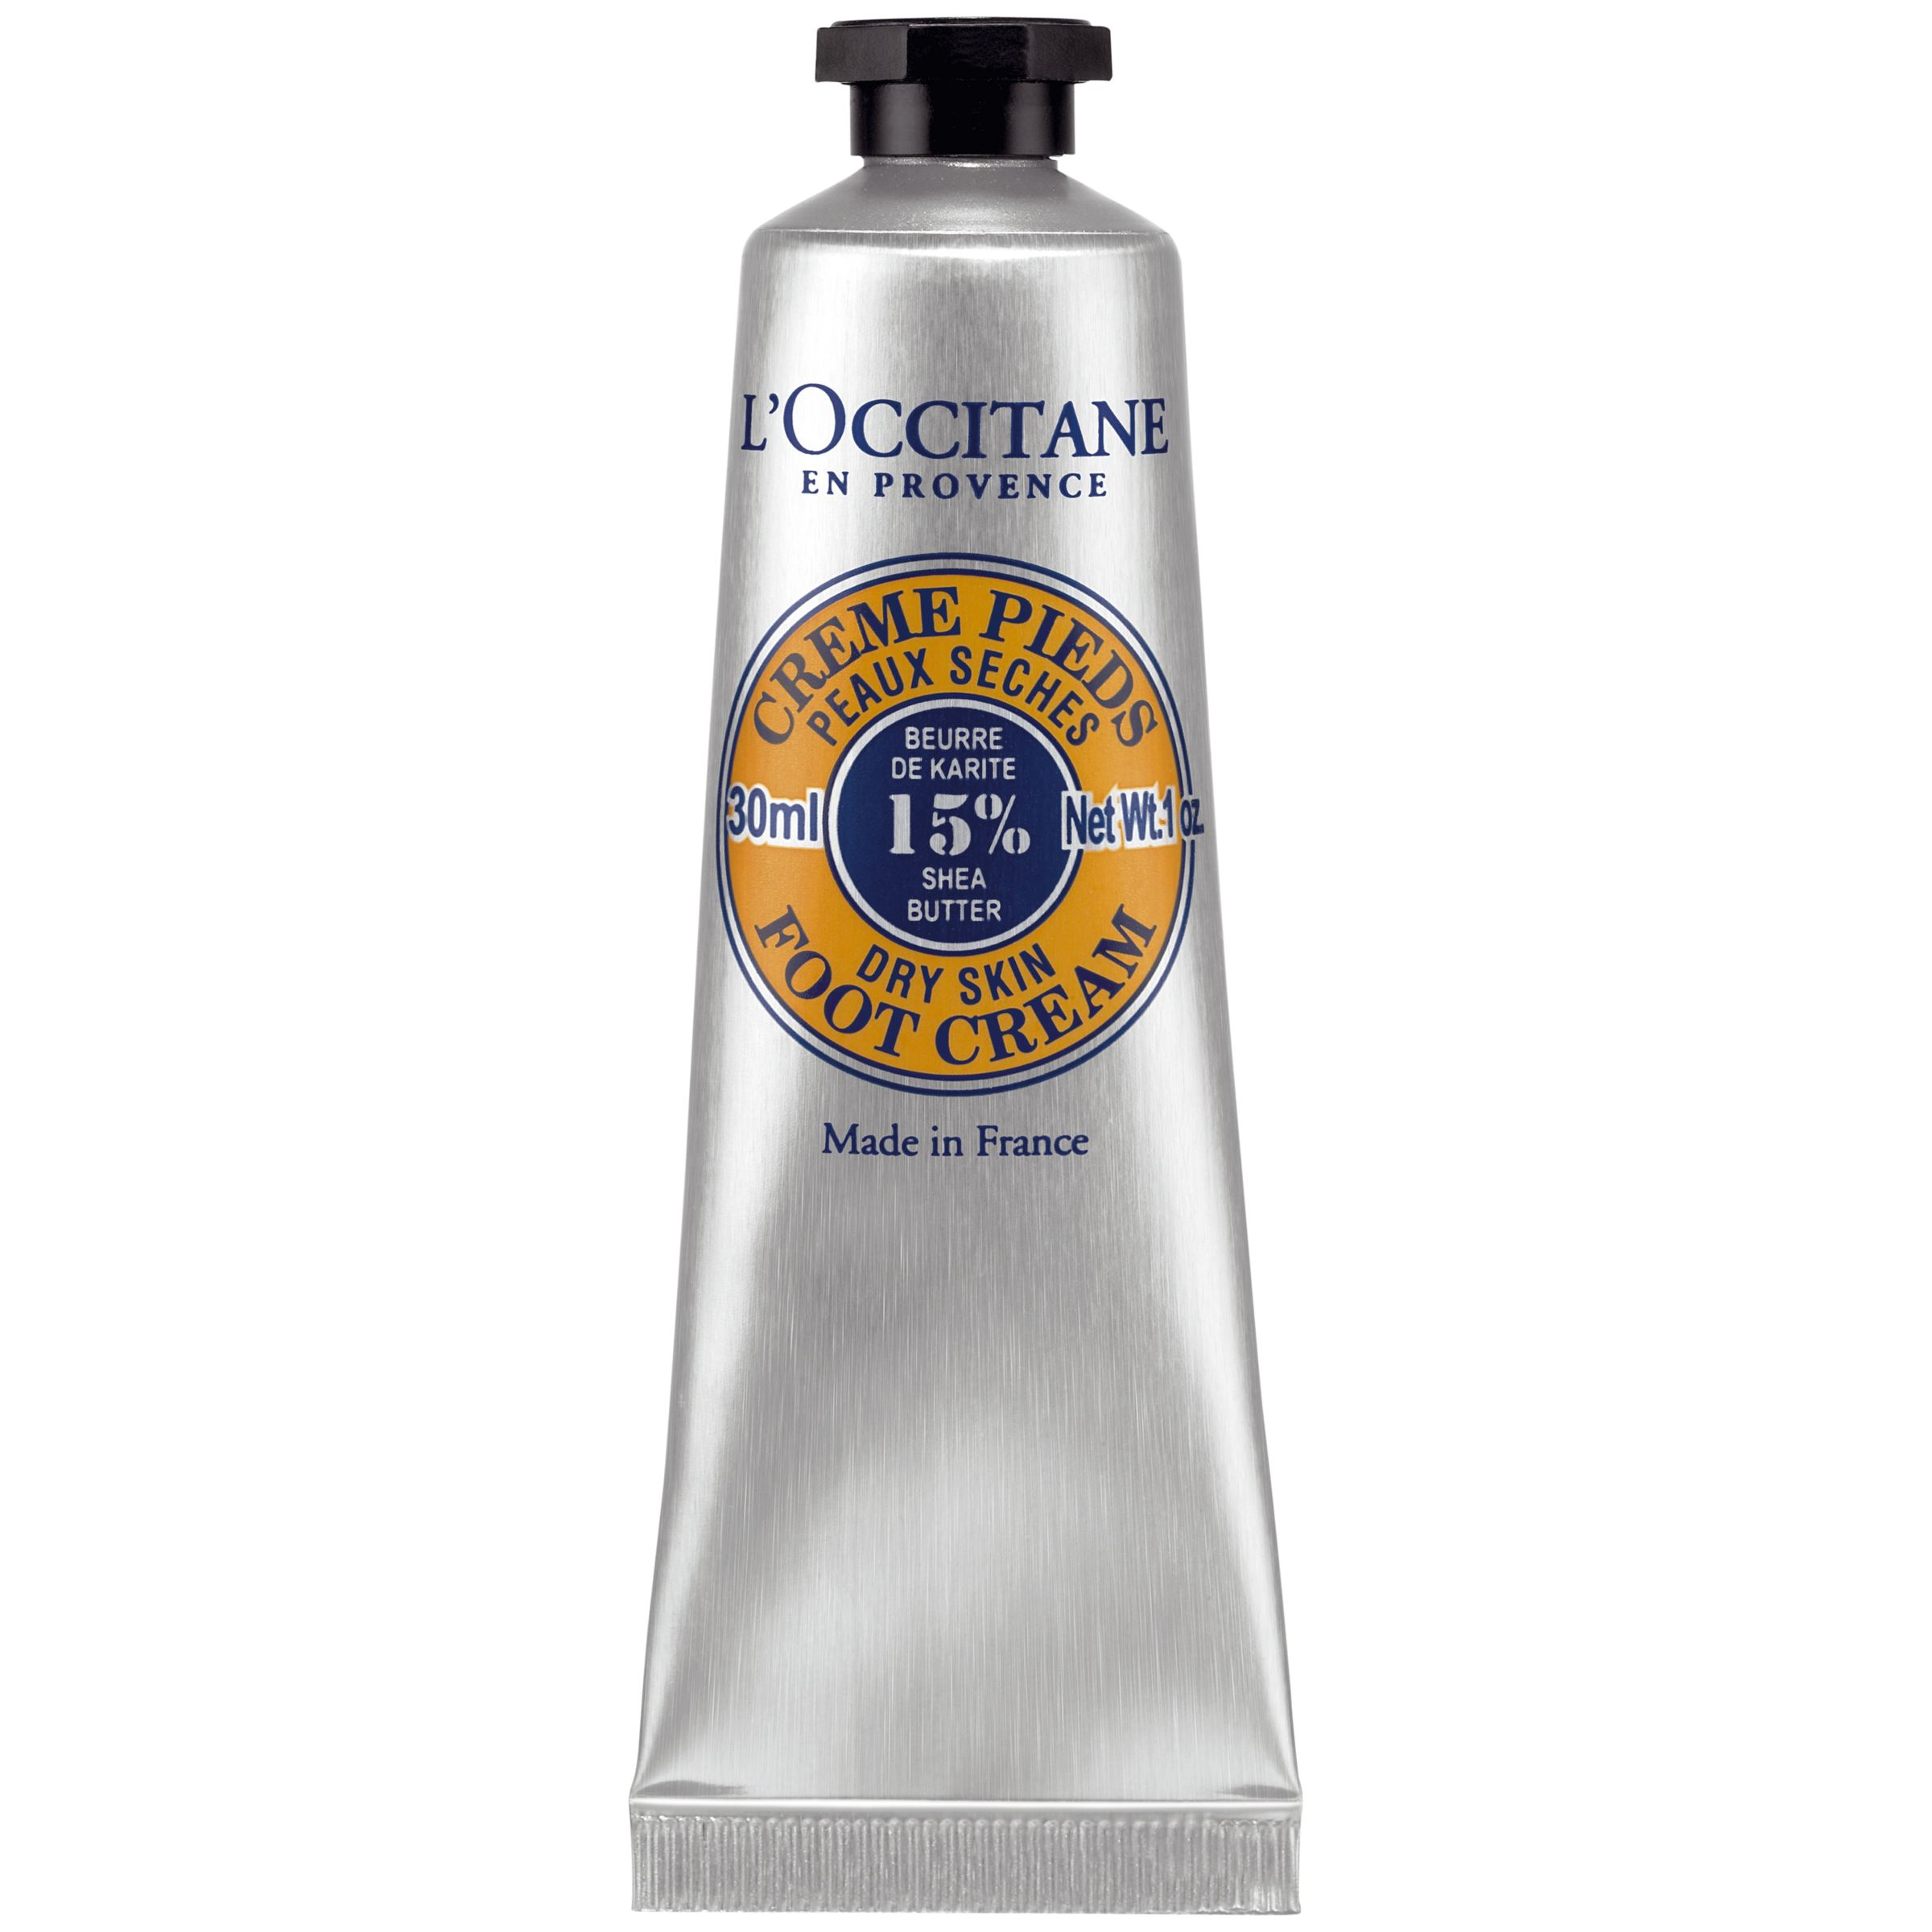 L'Occitane L'Occitane Shea Butter Foot Cream, 30ml